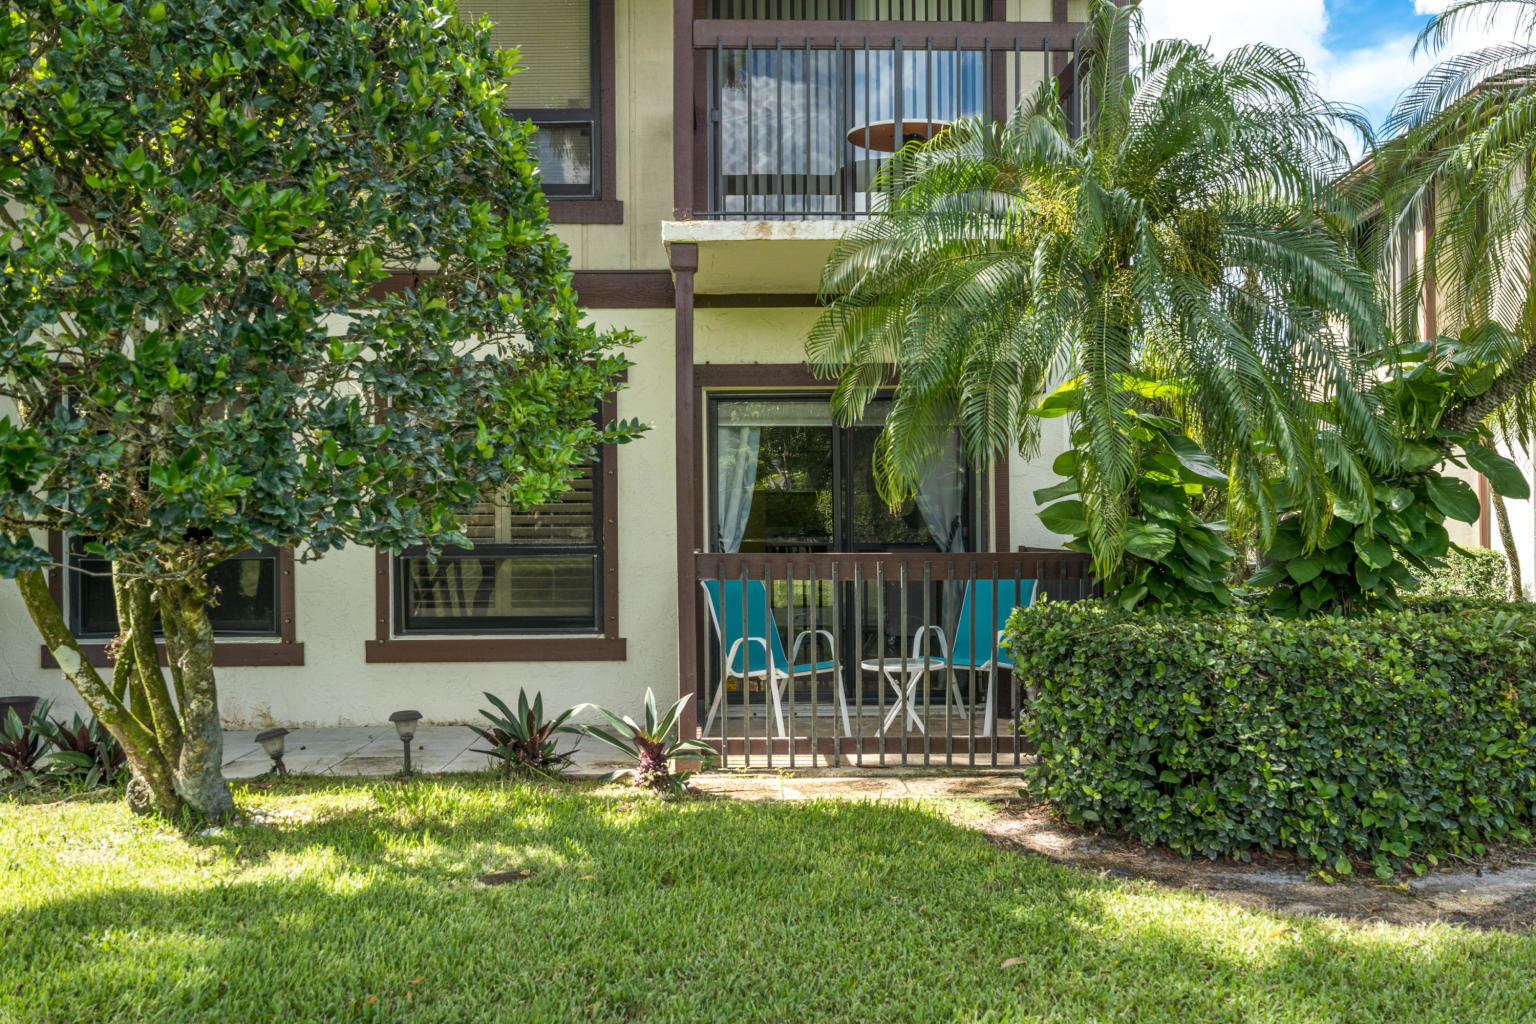 13334 Polo Club Road, Wellington, Florida 33414, 1 Bedroom Bedrooms, ,1 BathroomBathrooms,Condo/Coop,For Rent,BAGATTELLE,Polo Club,1,RX-10539631